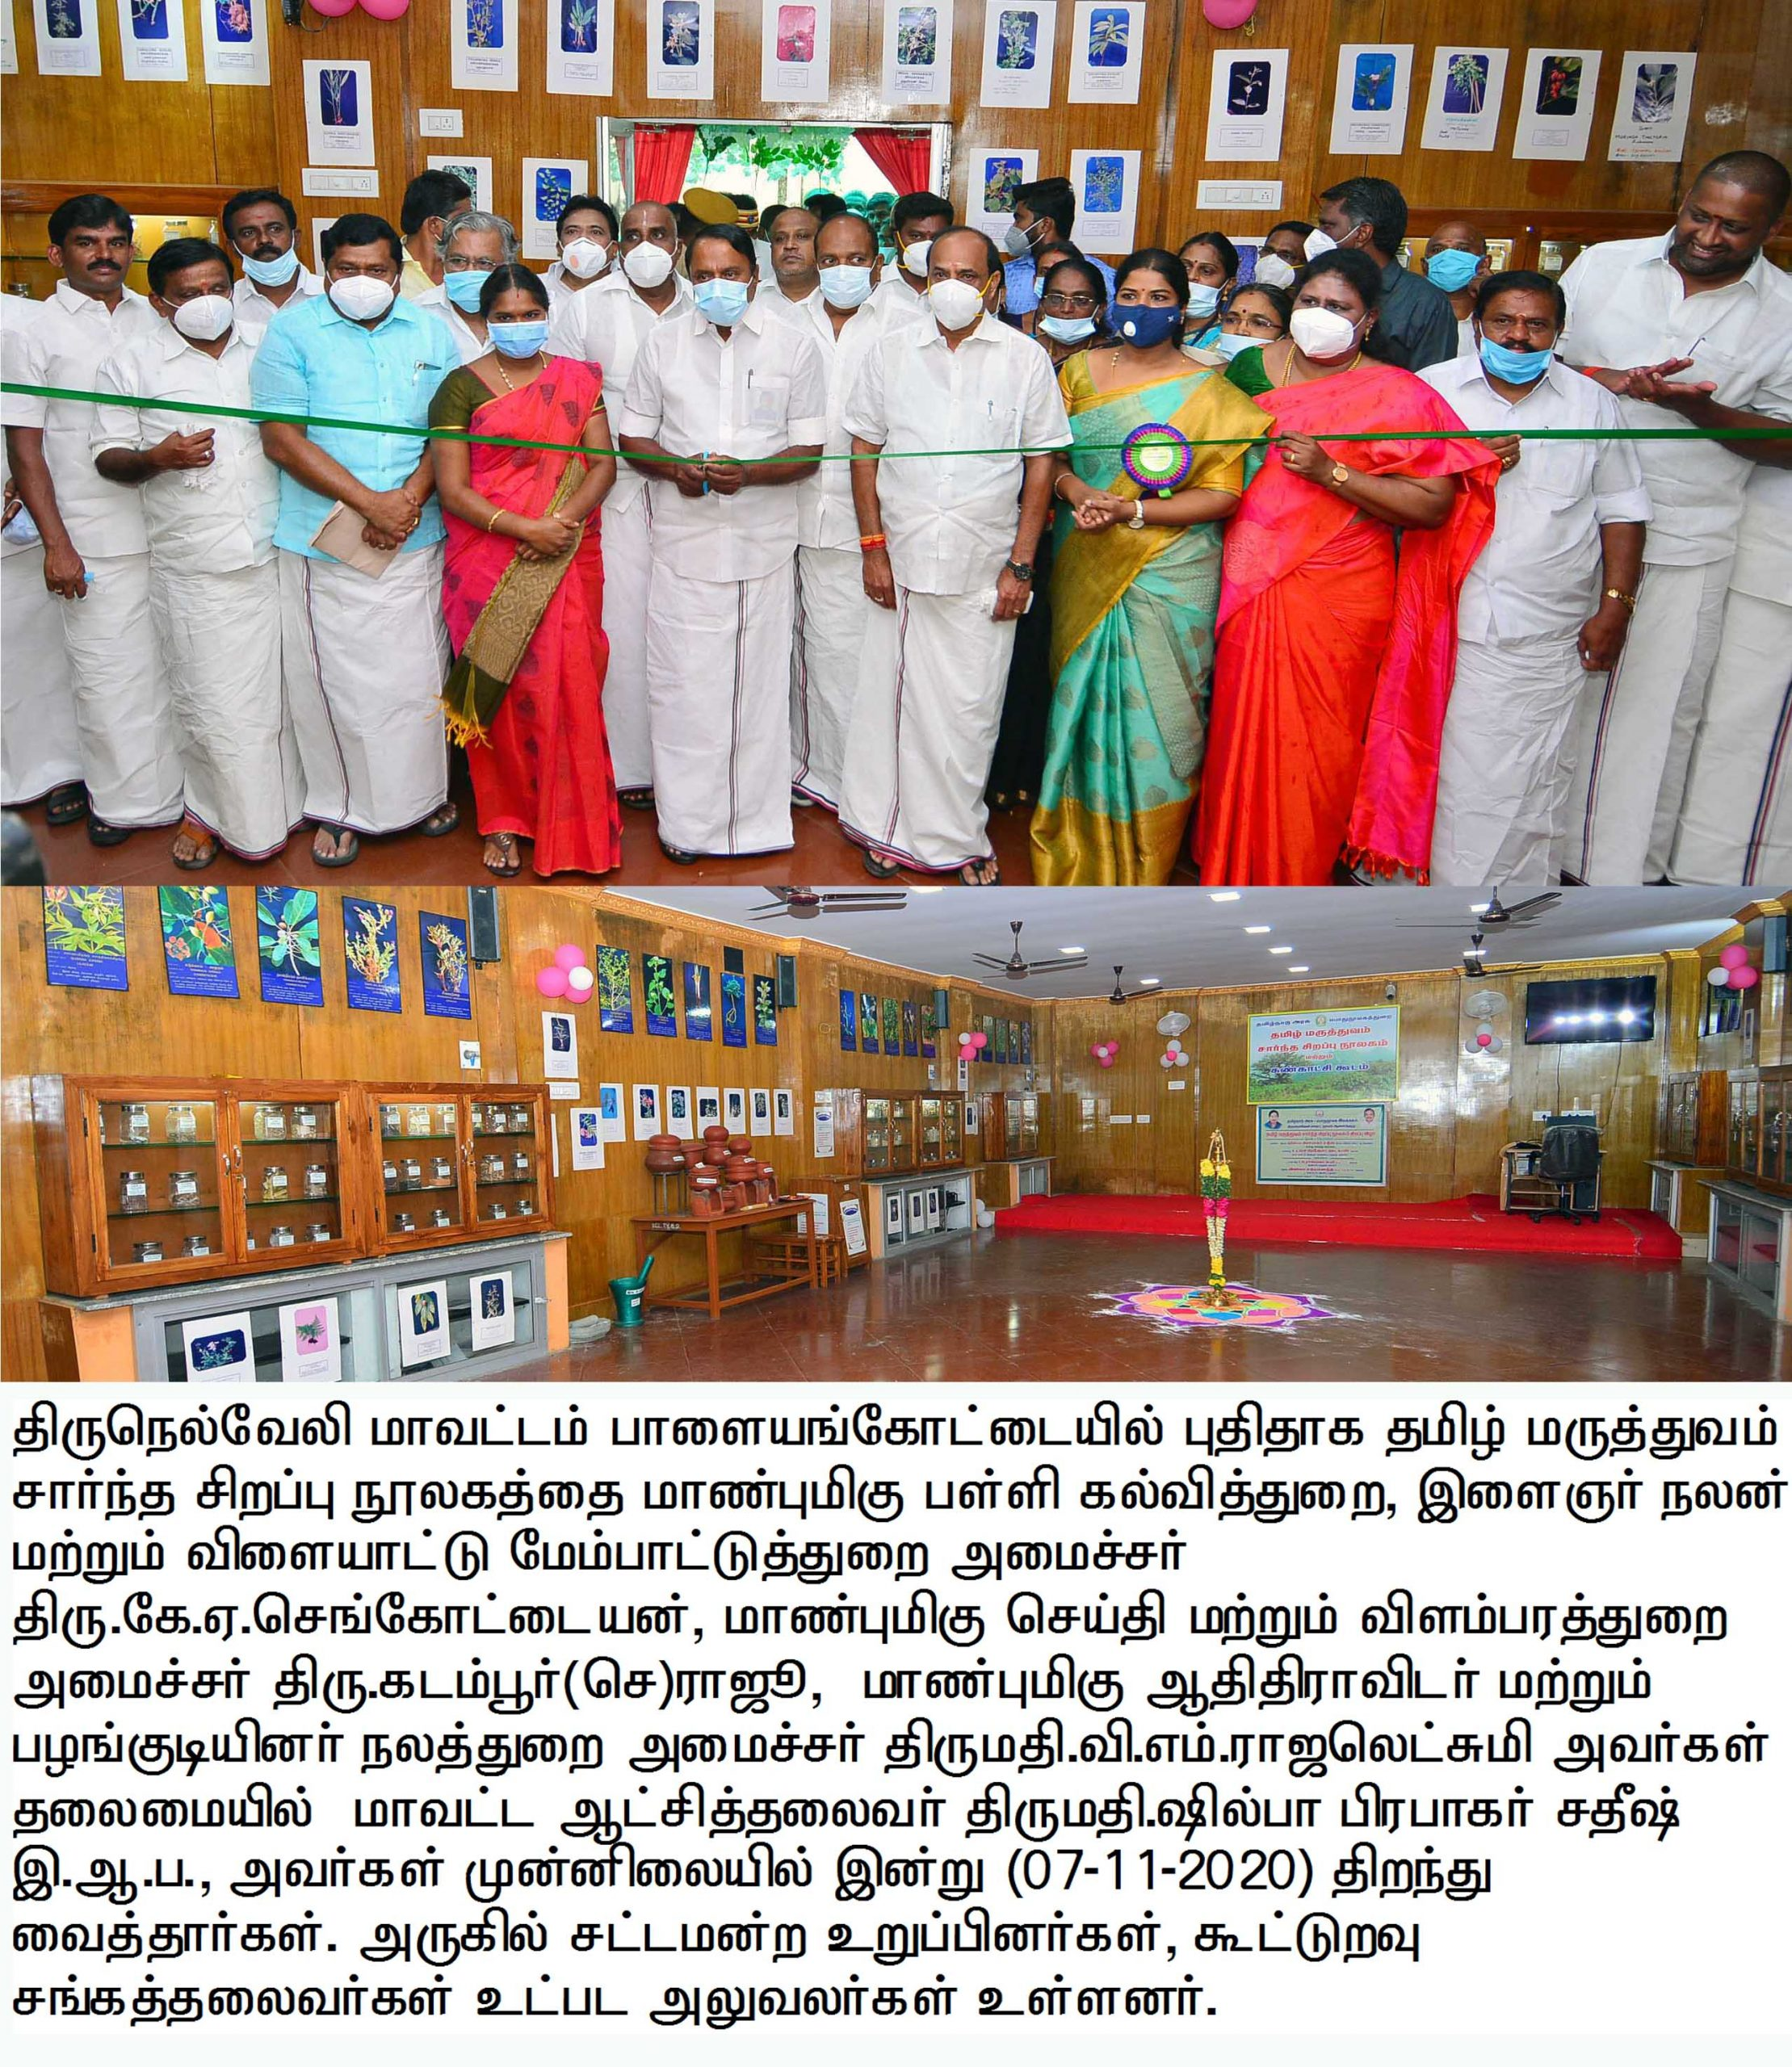 Inauguration of a special library and exhibition hall